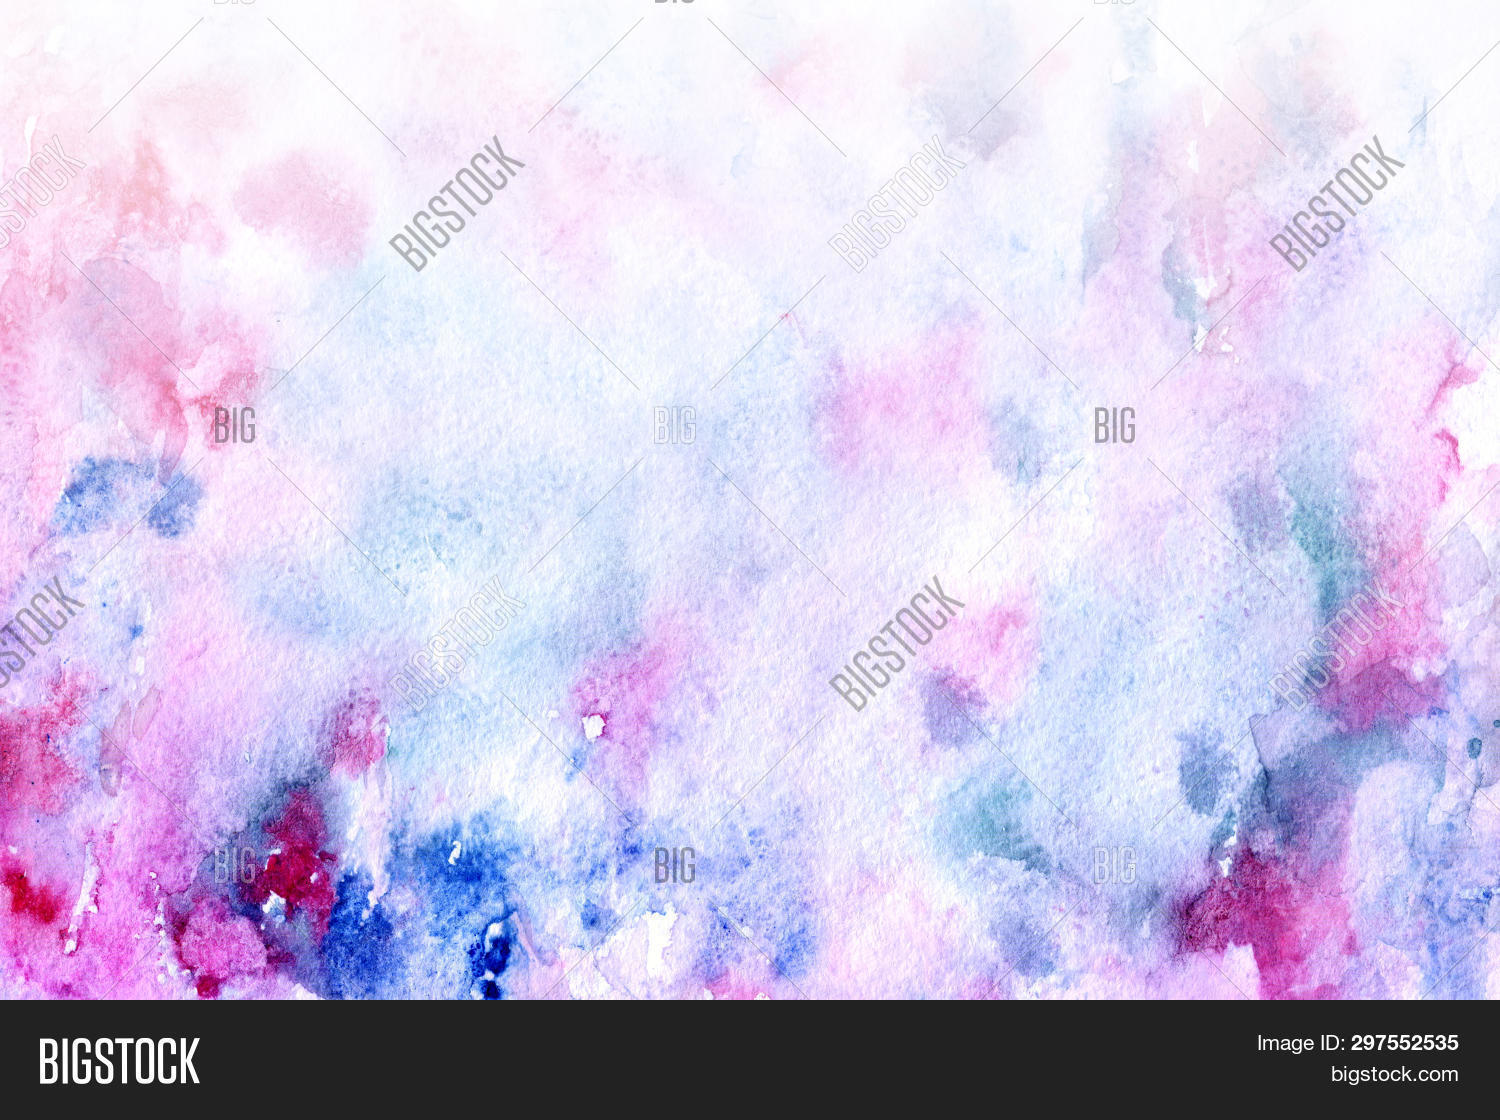 abstract,aqua,aquarelle,art,artistic,background,block,blue,brush,cloud,color,colorful,colour,colourful,create,creative,creativity,decorate,design,draw,drawing,effect,fantasy,frame,grunge,handmade,illustration,image,ink,magenta,mix,multicolor,multilayer,paint,paper,pastel,picture,pigment,pink,purple,rainbow,sketch,texture,violet,wallpaper,water,watercolor,watercolour,wave,white